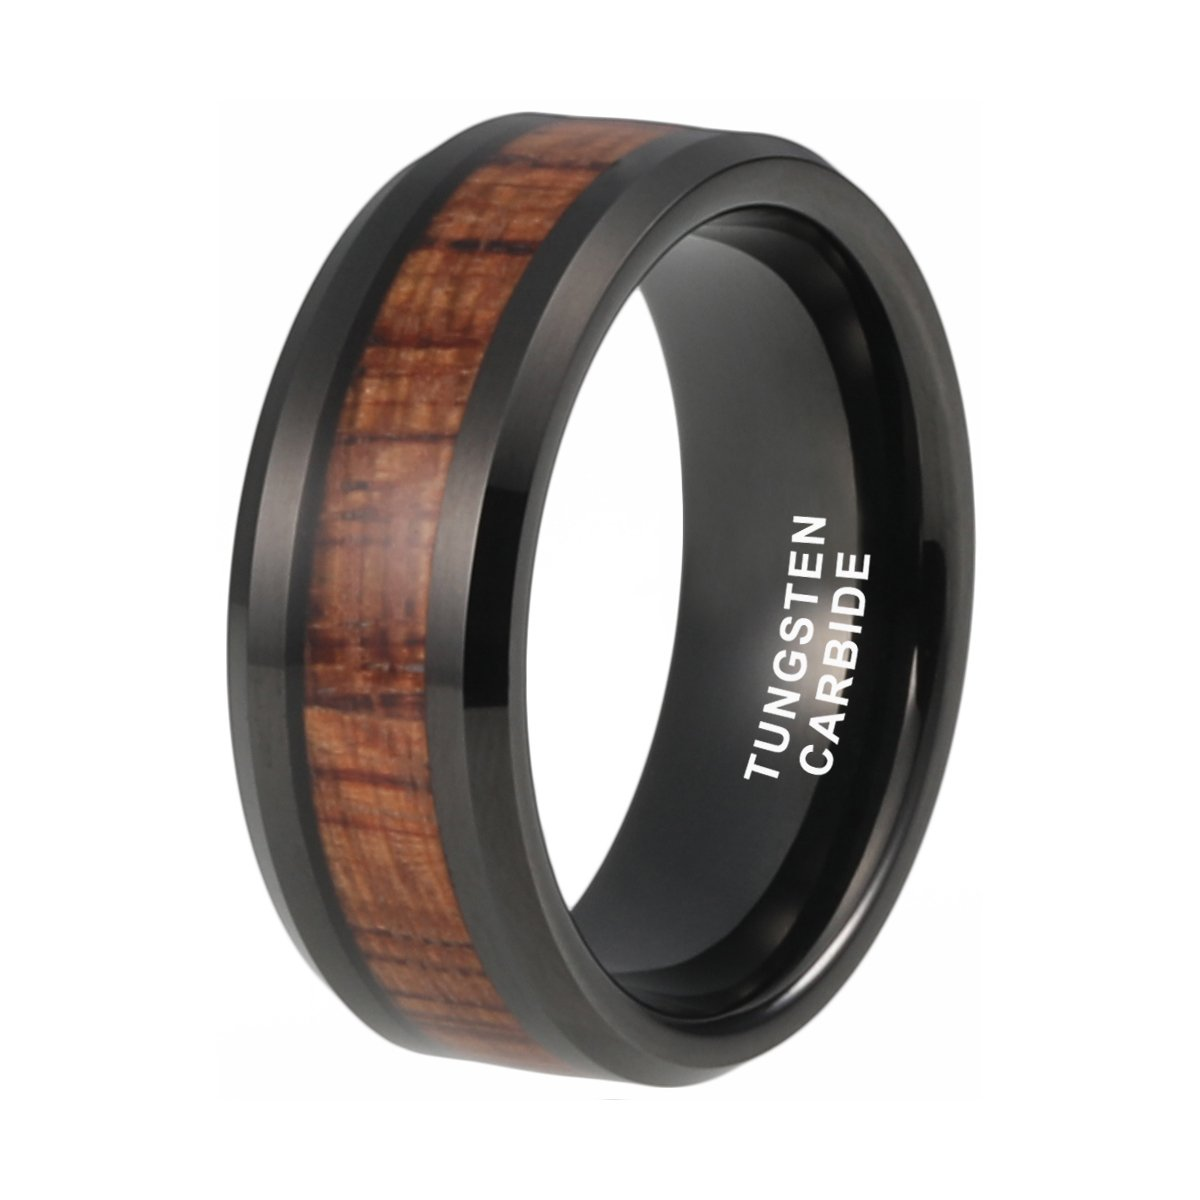 Black Tungsten Carbide Ring Wood Inlay Wedding Band 8mm Polished Shiny Comfort Fit (12)